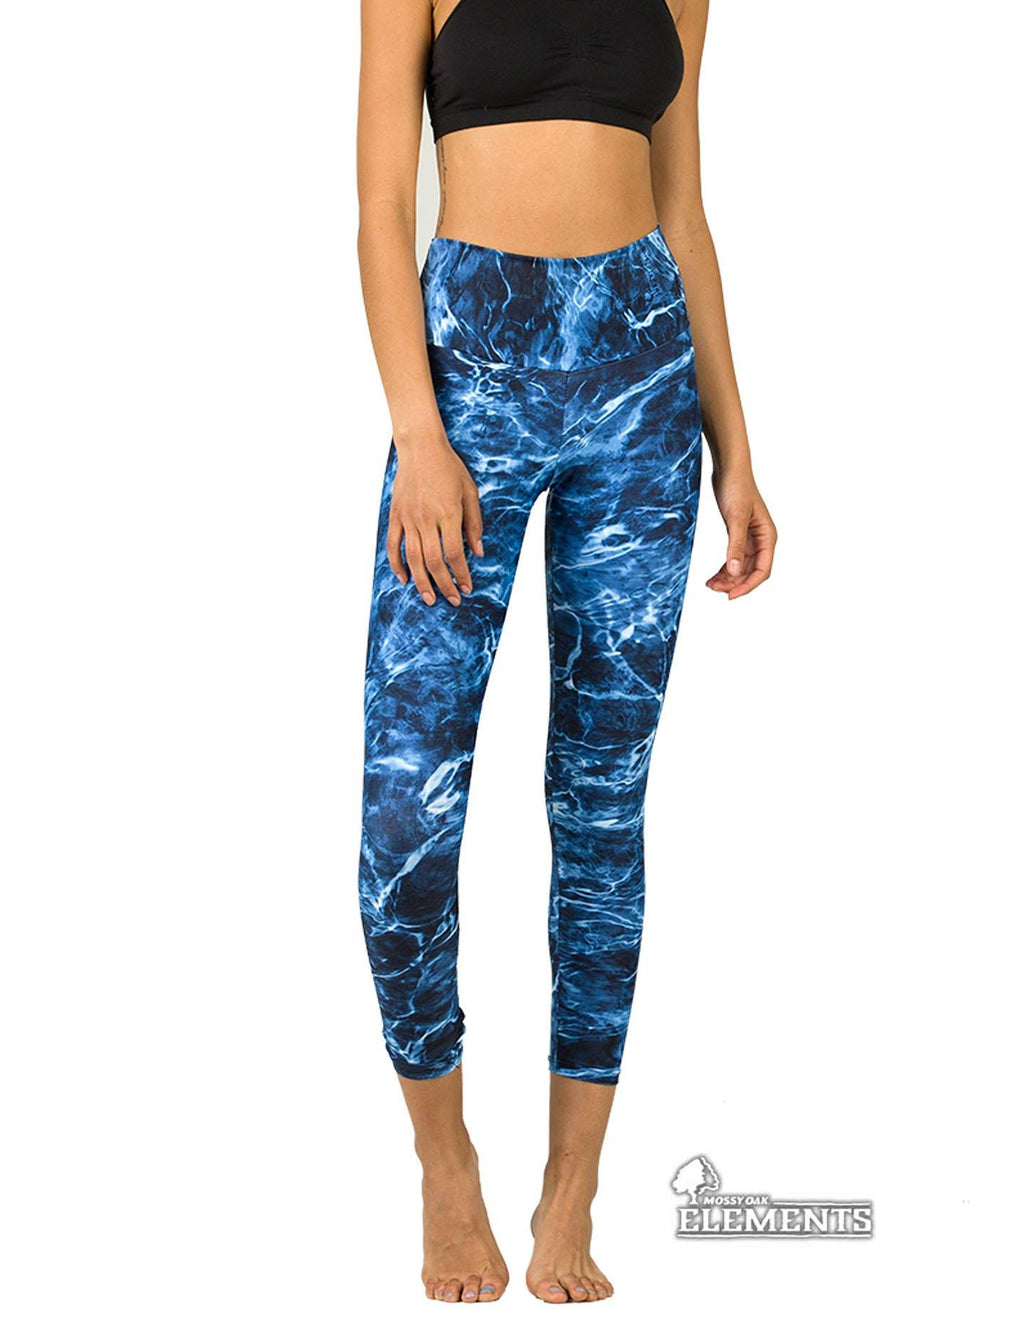 Apsara Leggings High Waist Cropped, Mossy Oak Elements Marlin